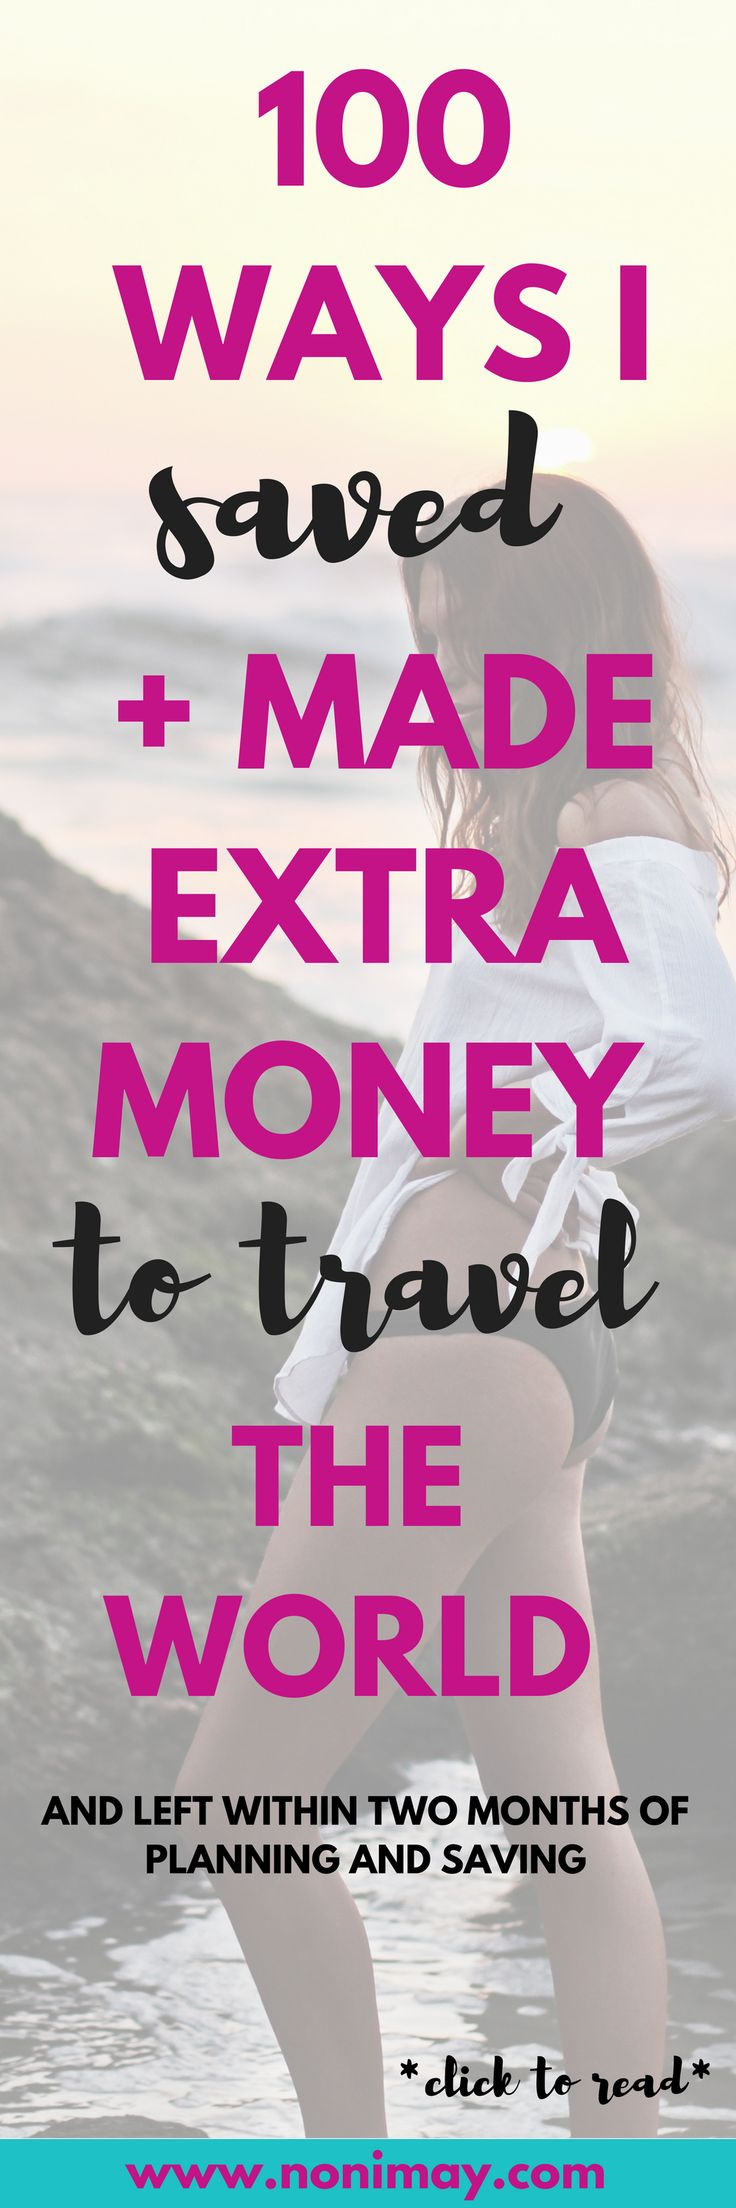 100 ways I saved + made extra money to travel the world